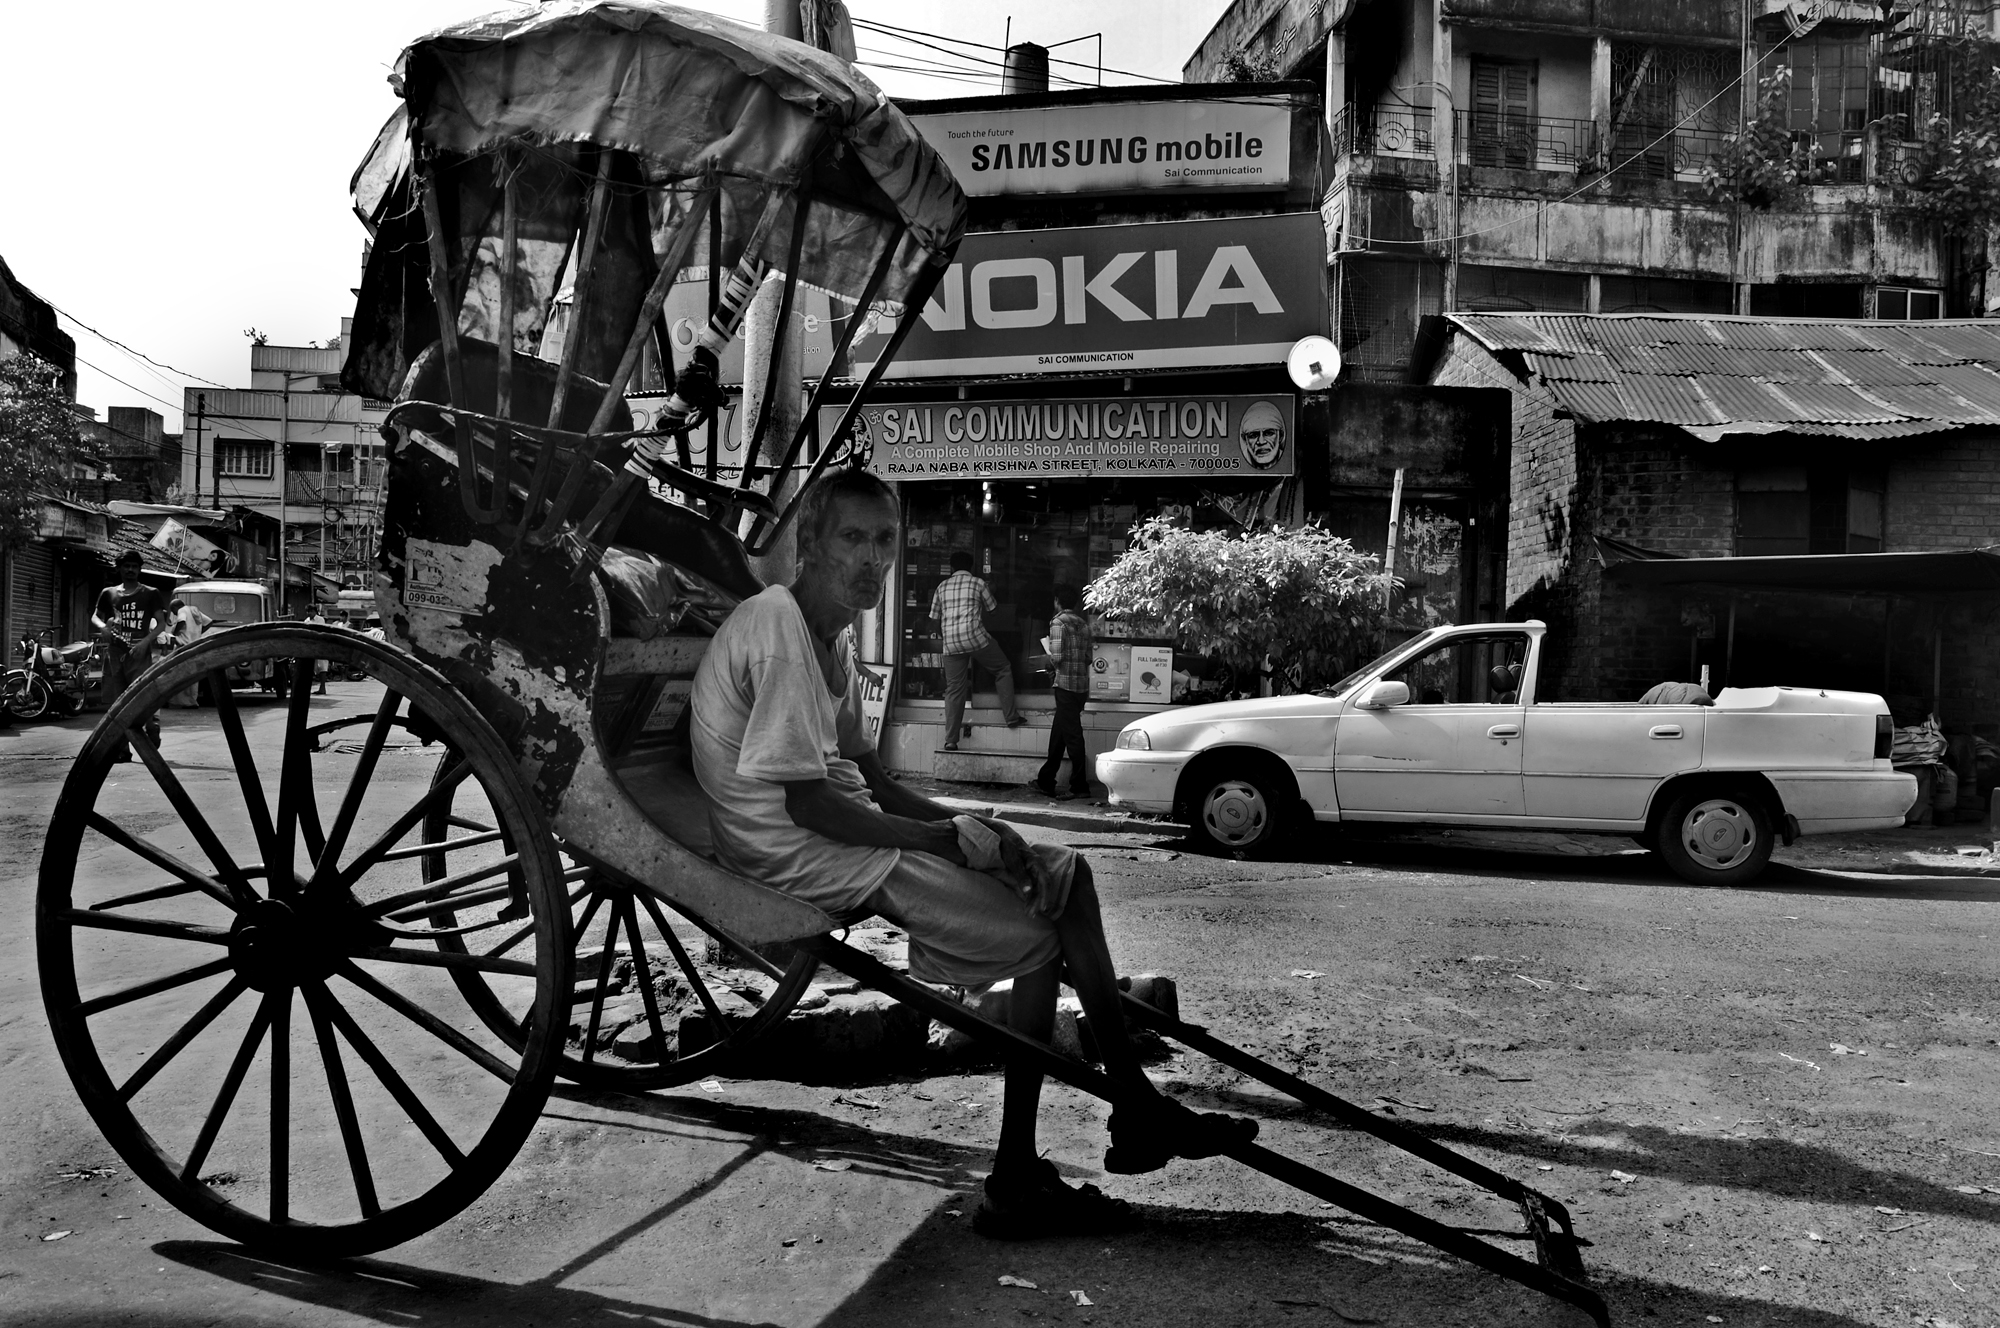 This image was taken from the streets in north kolkata west bengal india